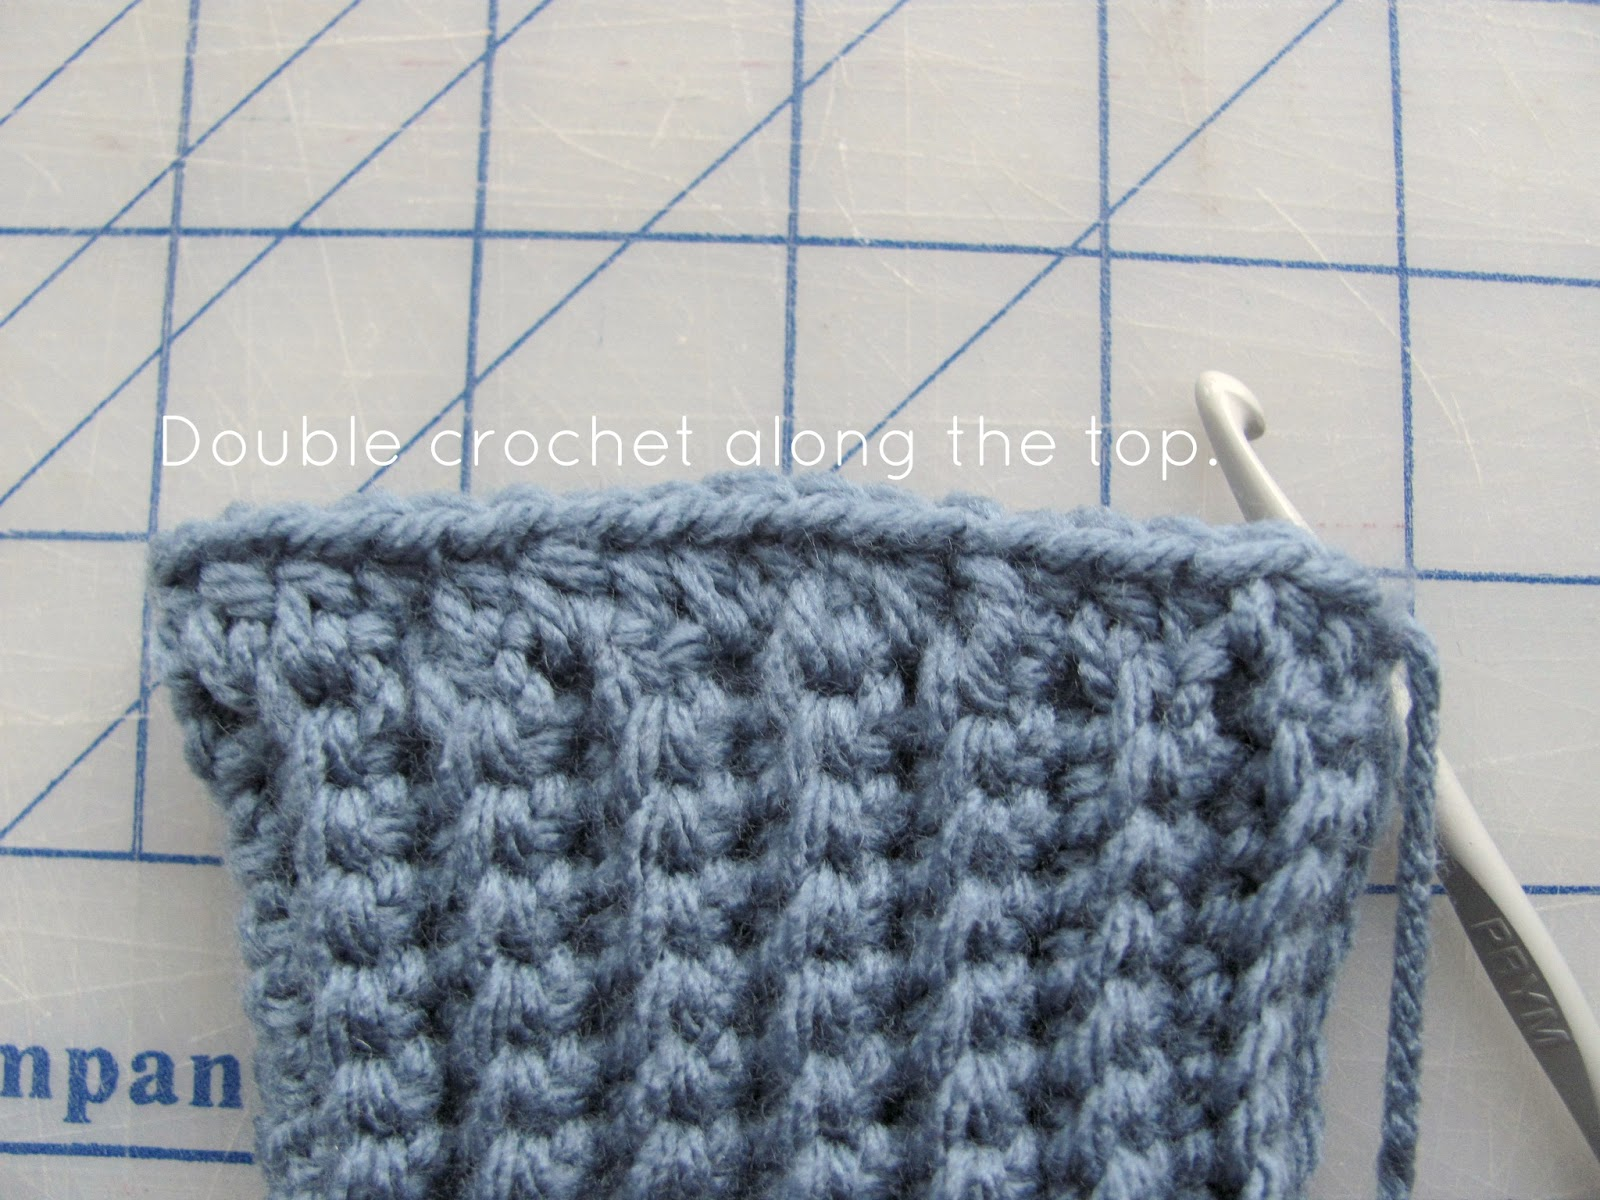 Crochet Stitches Hdc : half double crochet hdc 35 stitches along the top of your cuff